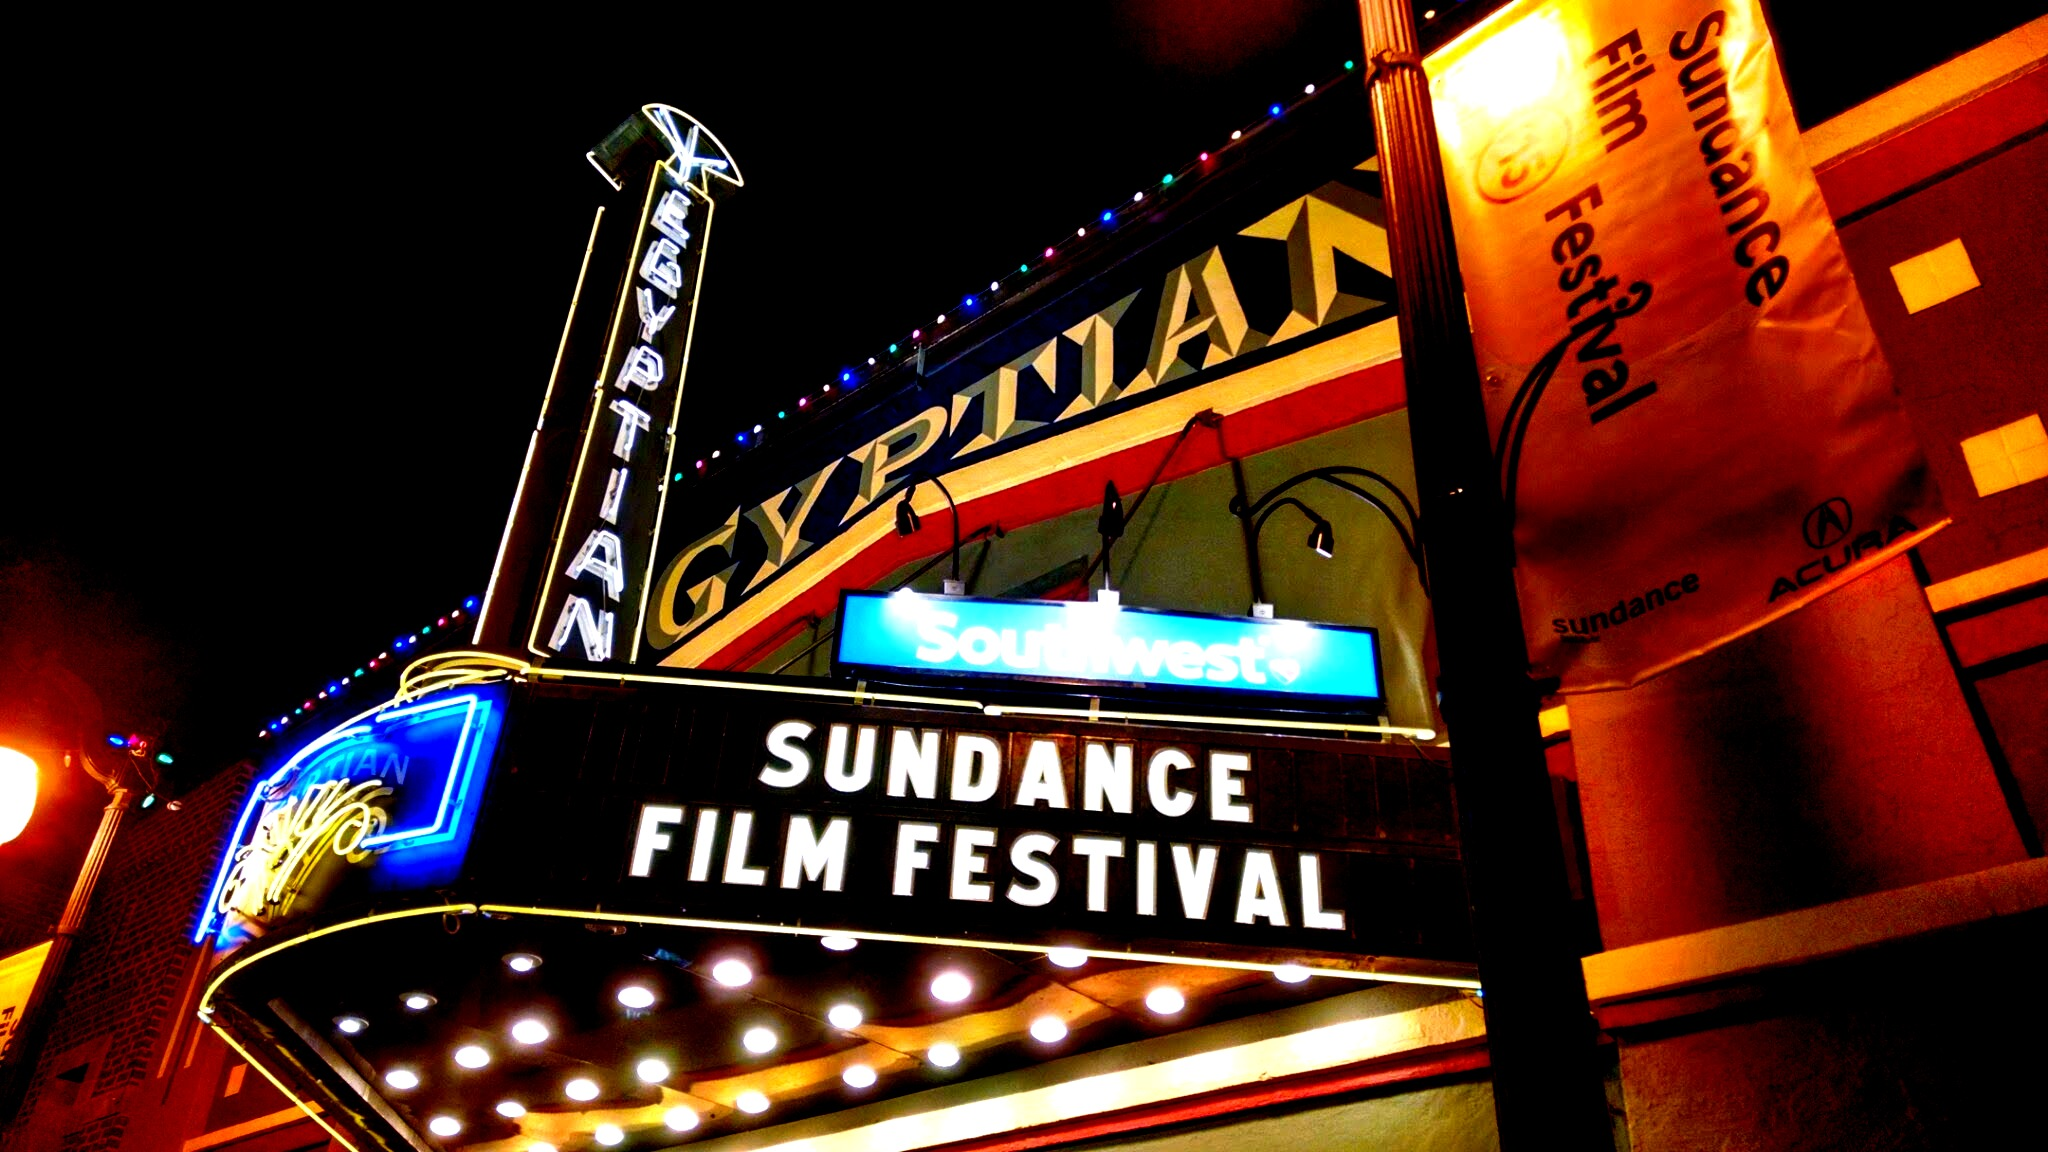 Film competitions and festivals